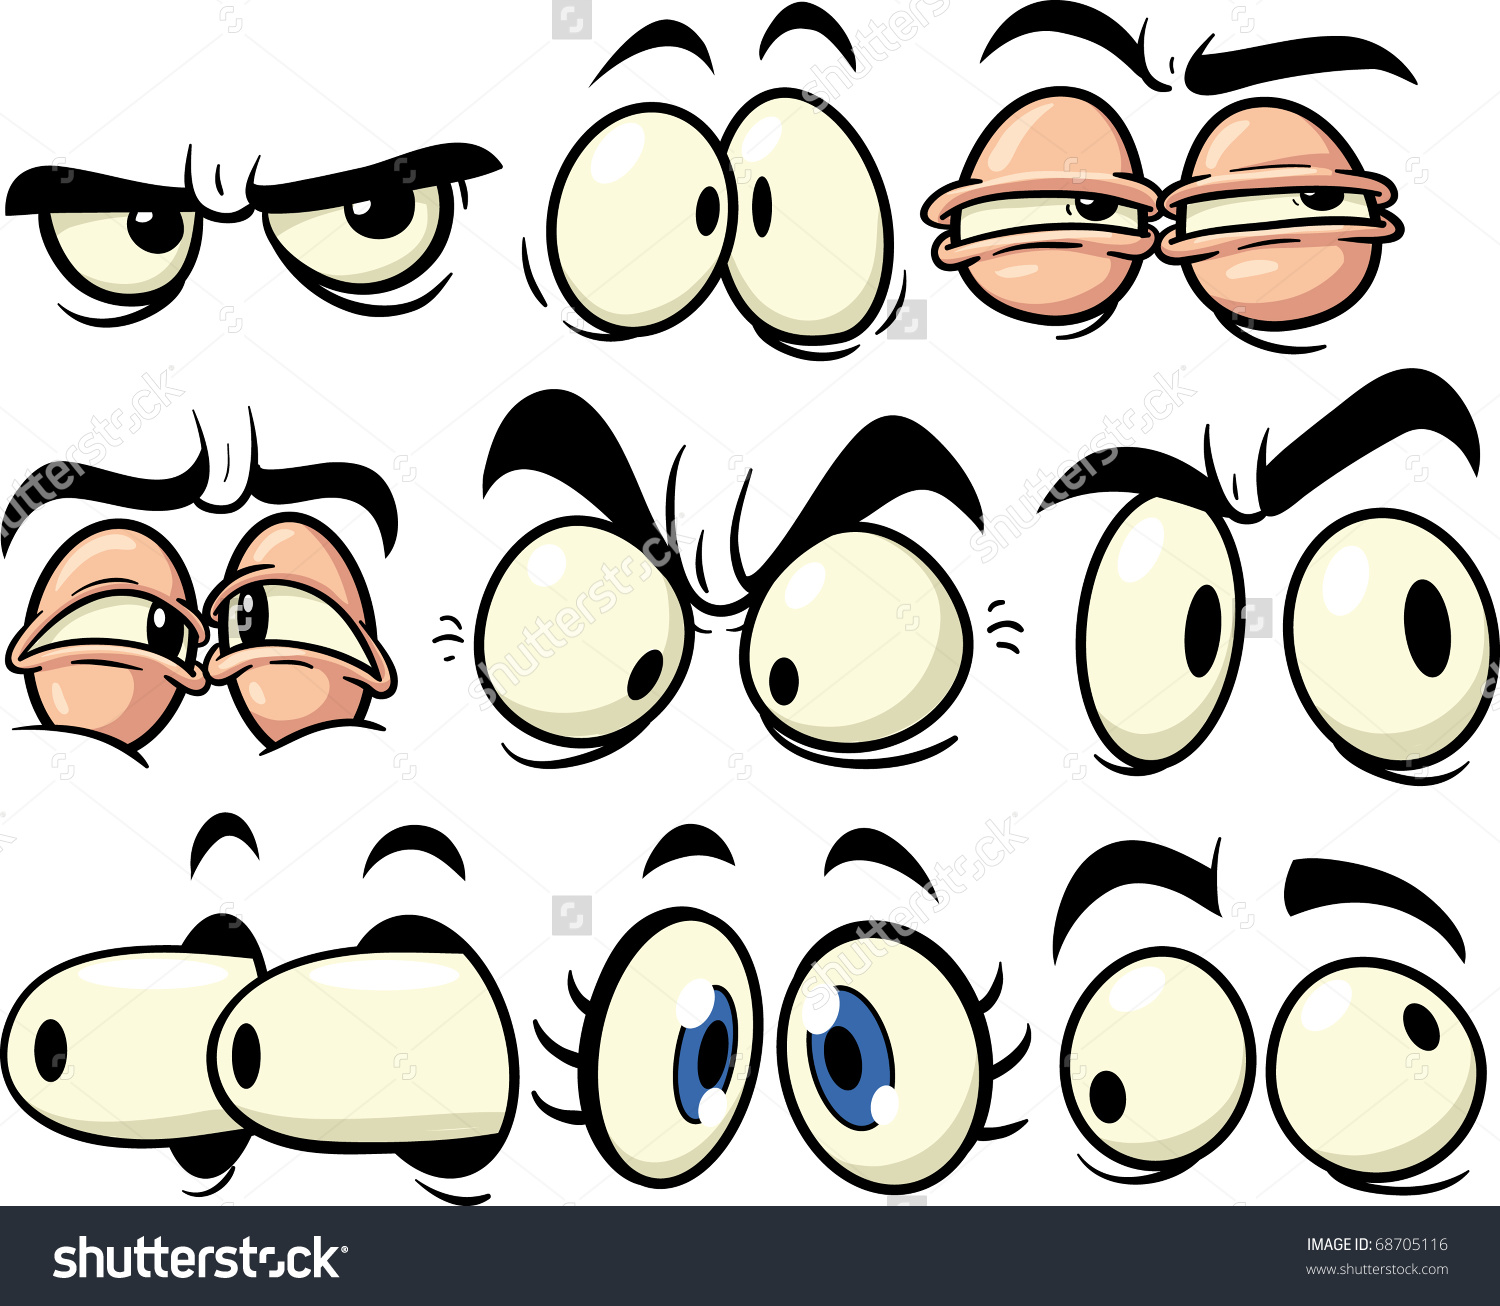 1500x1306 Funny Cartoon Eyes. All In Separate Layers For Easy Editing